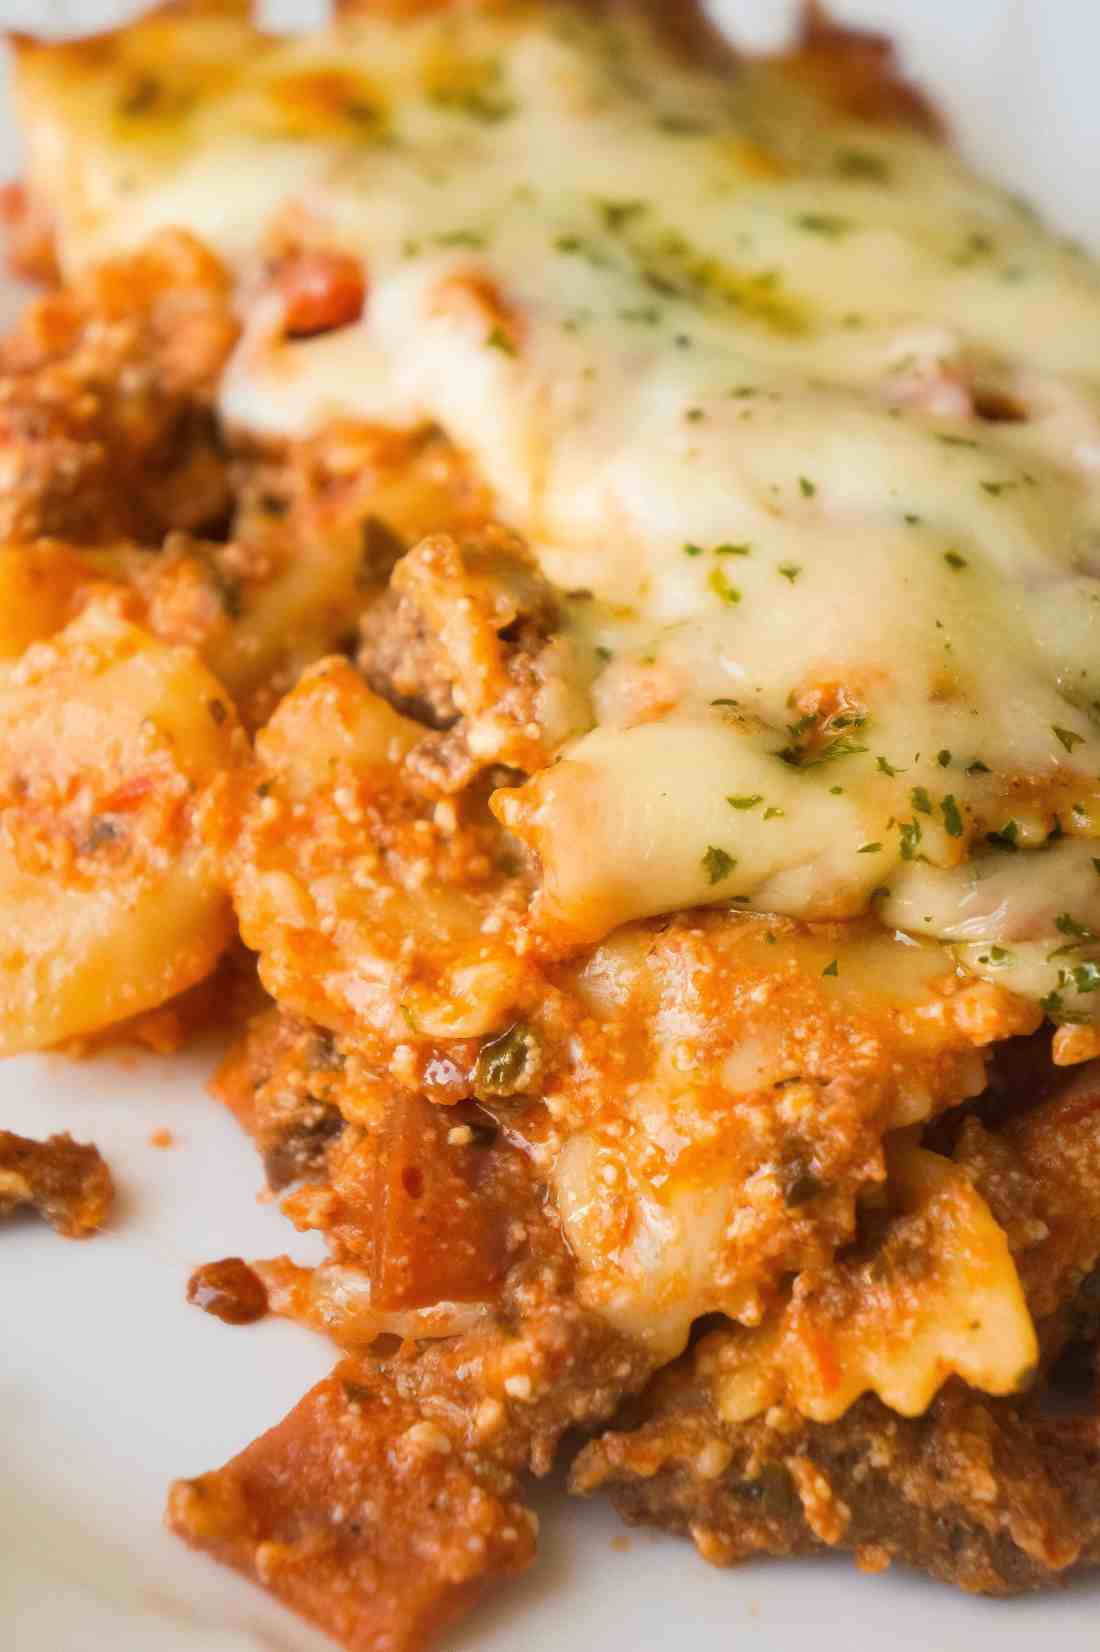 Three Meat Lasagna Casserole is an easy dinner recipe loaded with ground beef, pepperoni, bacon and cheese. This fun twist on lasagna requires no layering and only takes 45 minutes from start to finish.